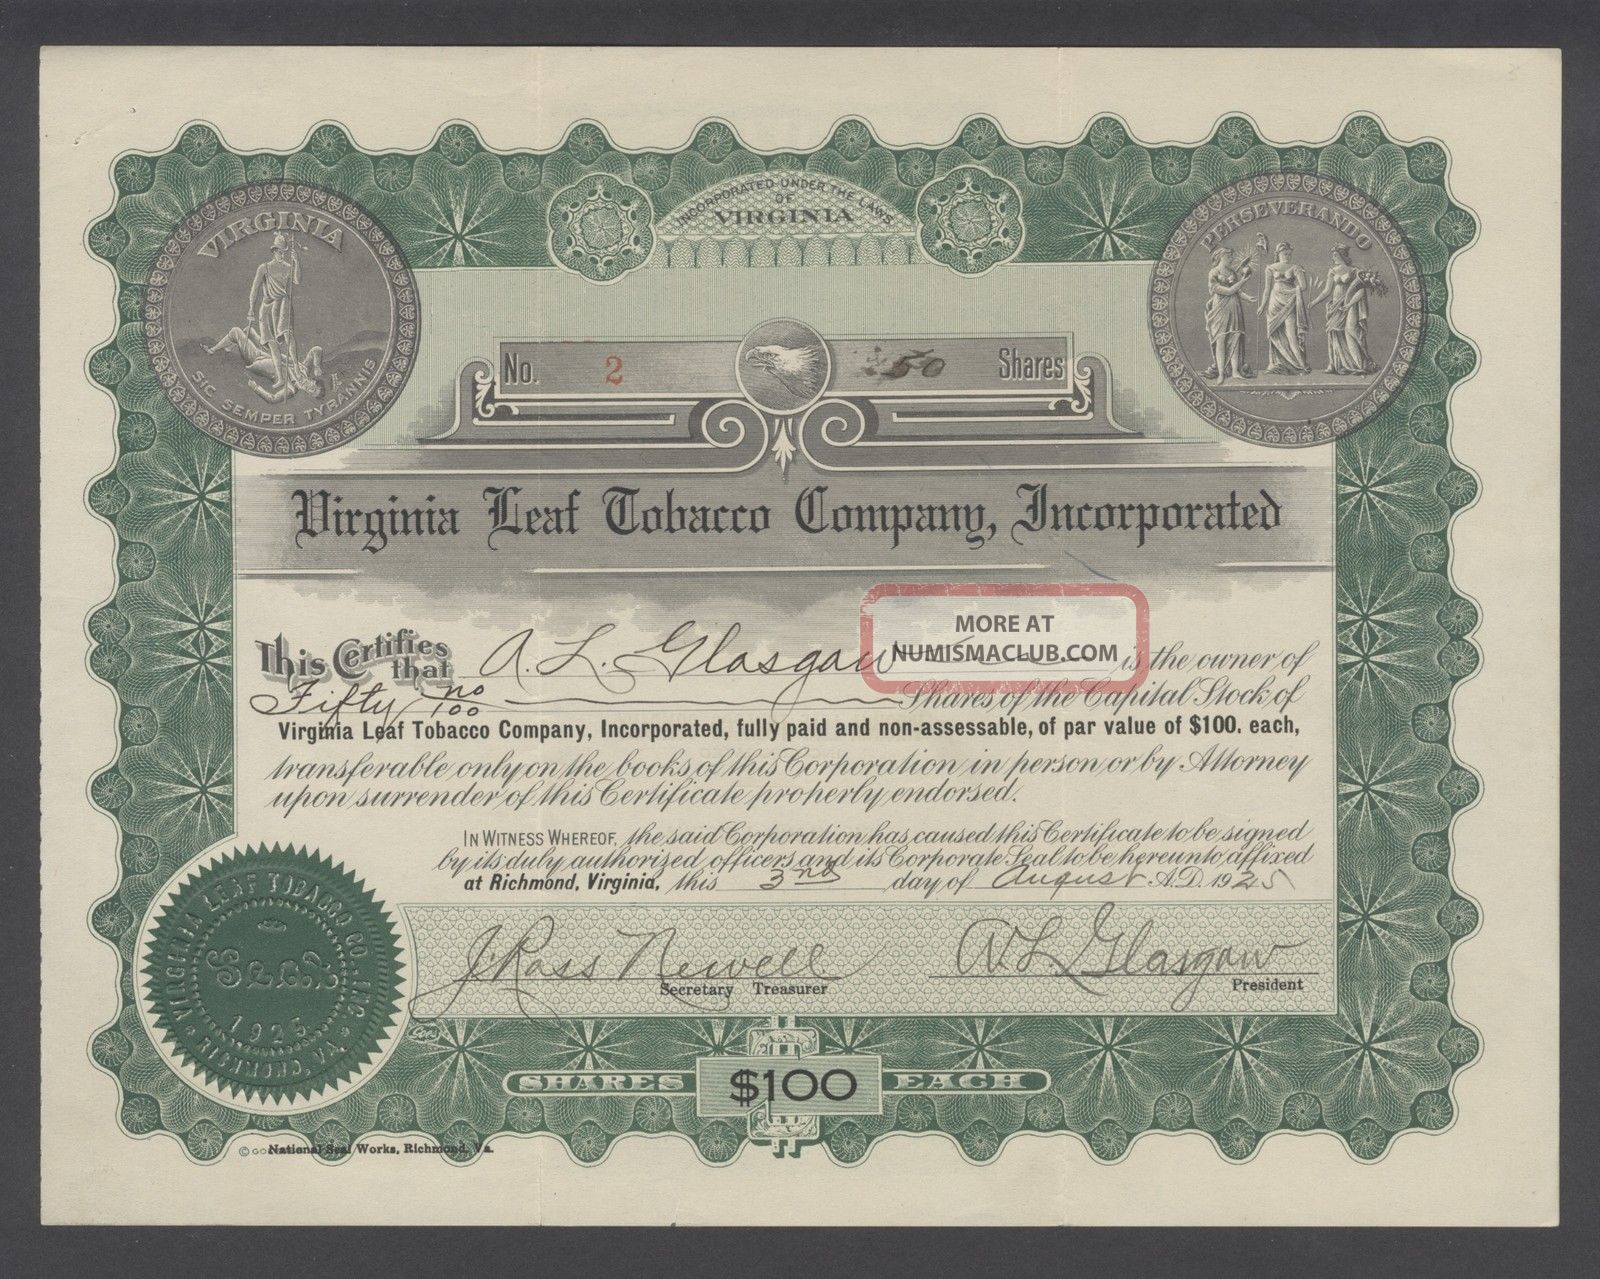 United States 1925 Bond Certificate Virginia Leaf Tobacco Co Inc. .  B1583 World photo